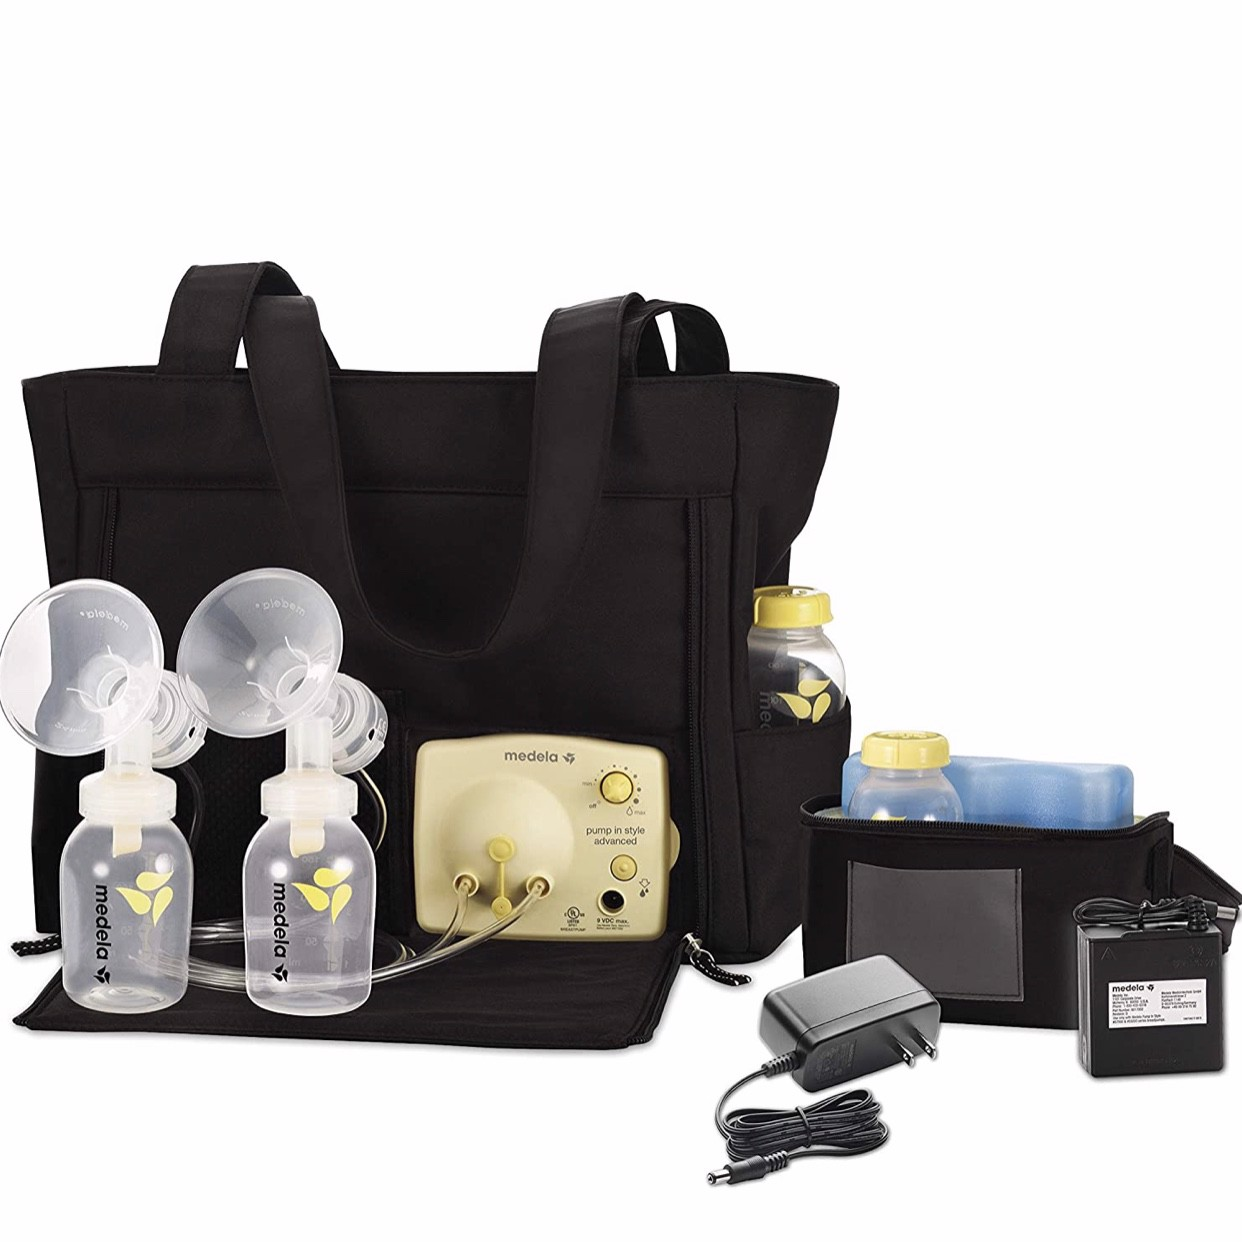 Máy hút sữa Medela Pump in Style Advanced Breast Pump with Tote